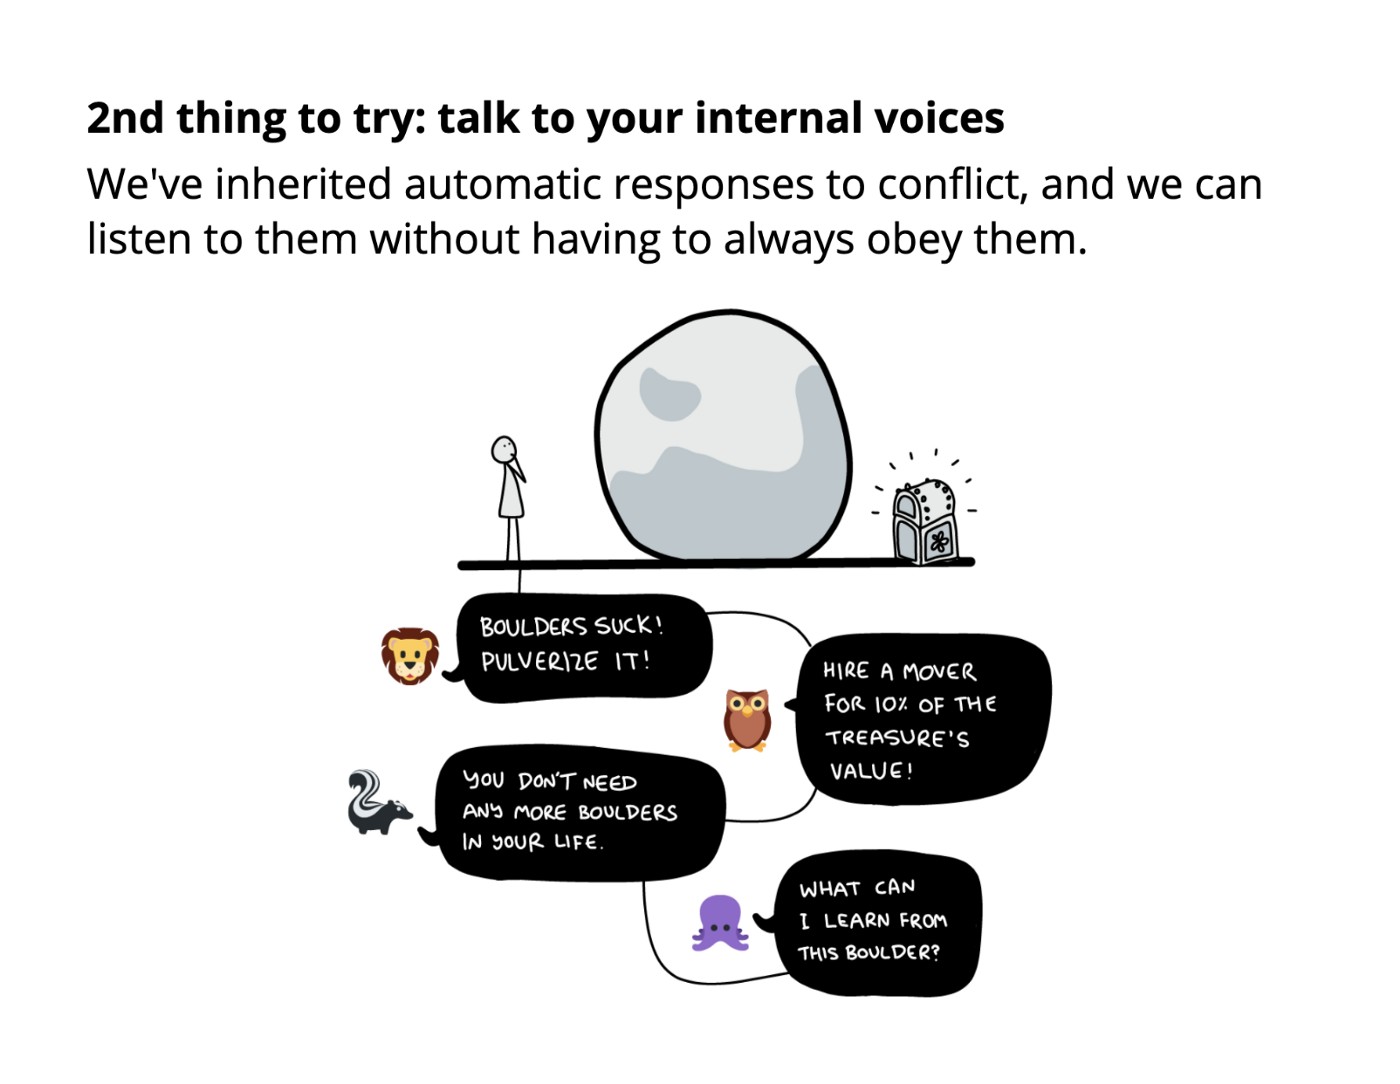 2nd thing to try: talk to your internal voices